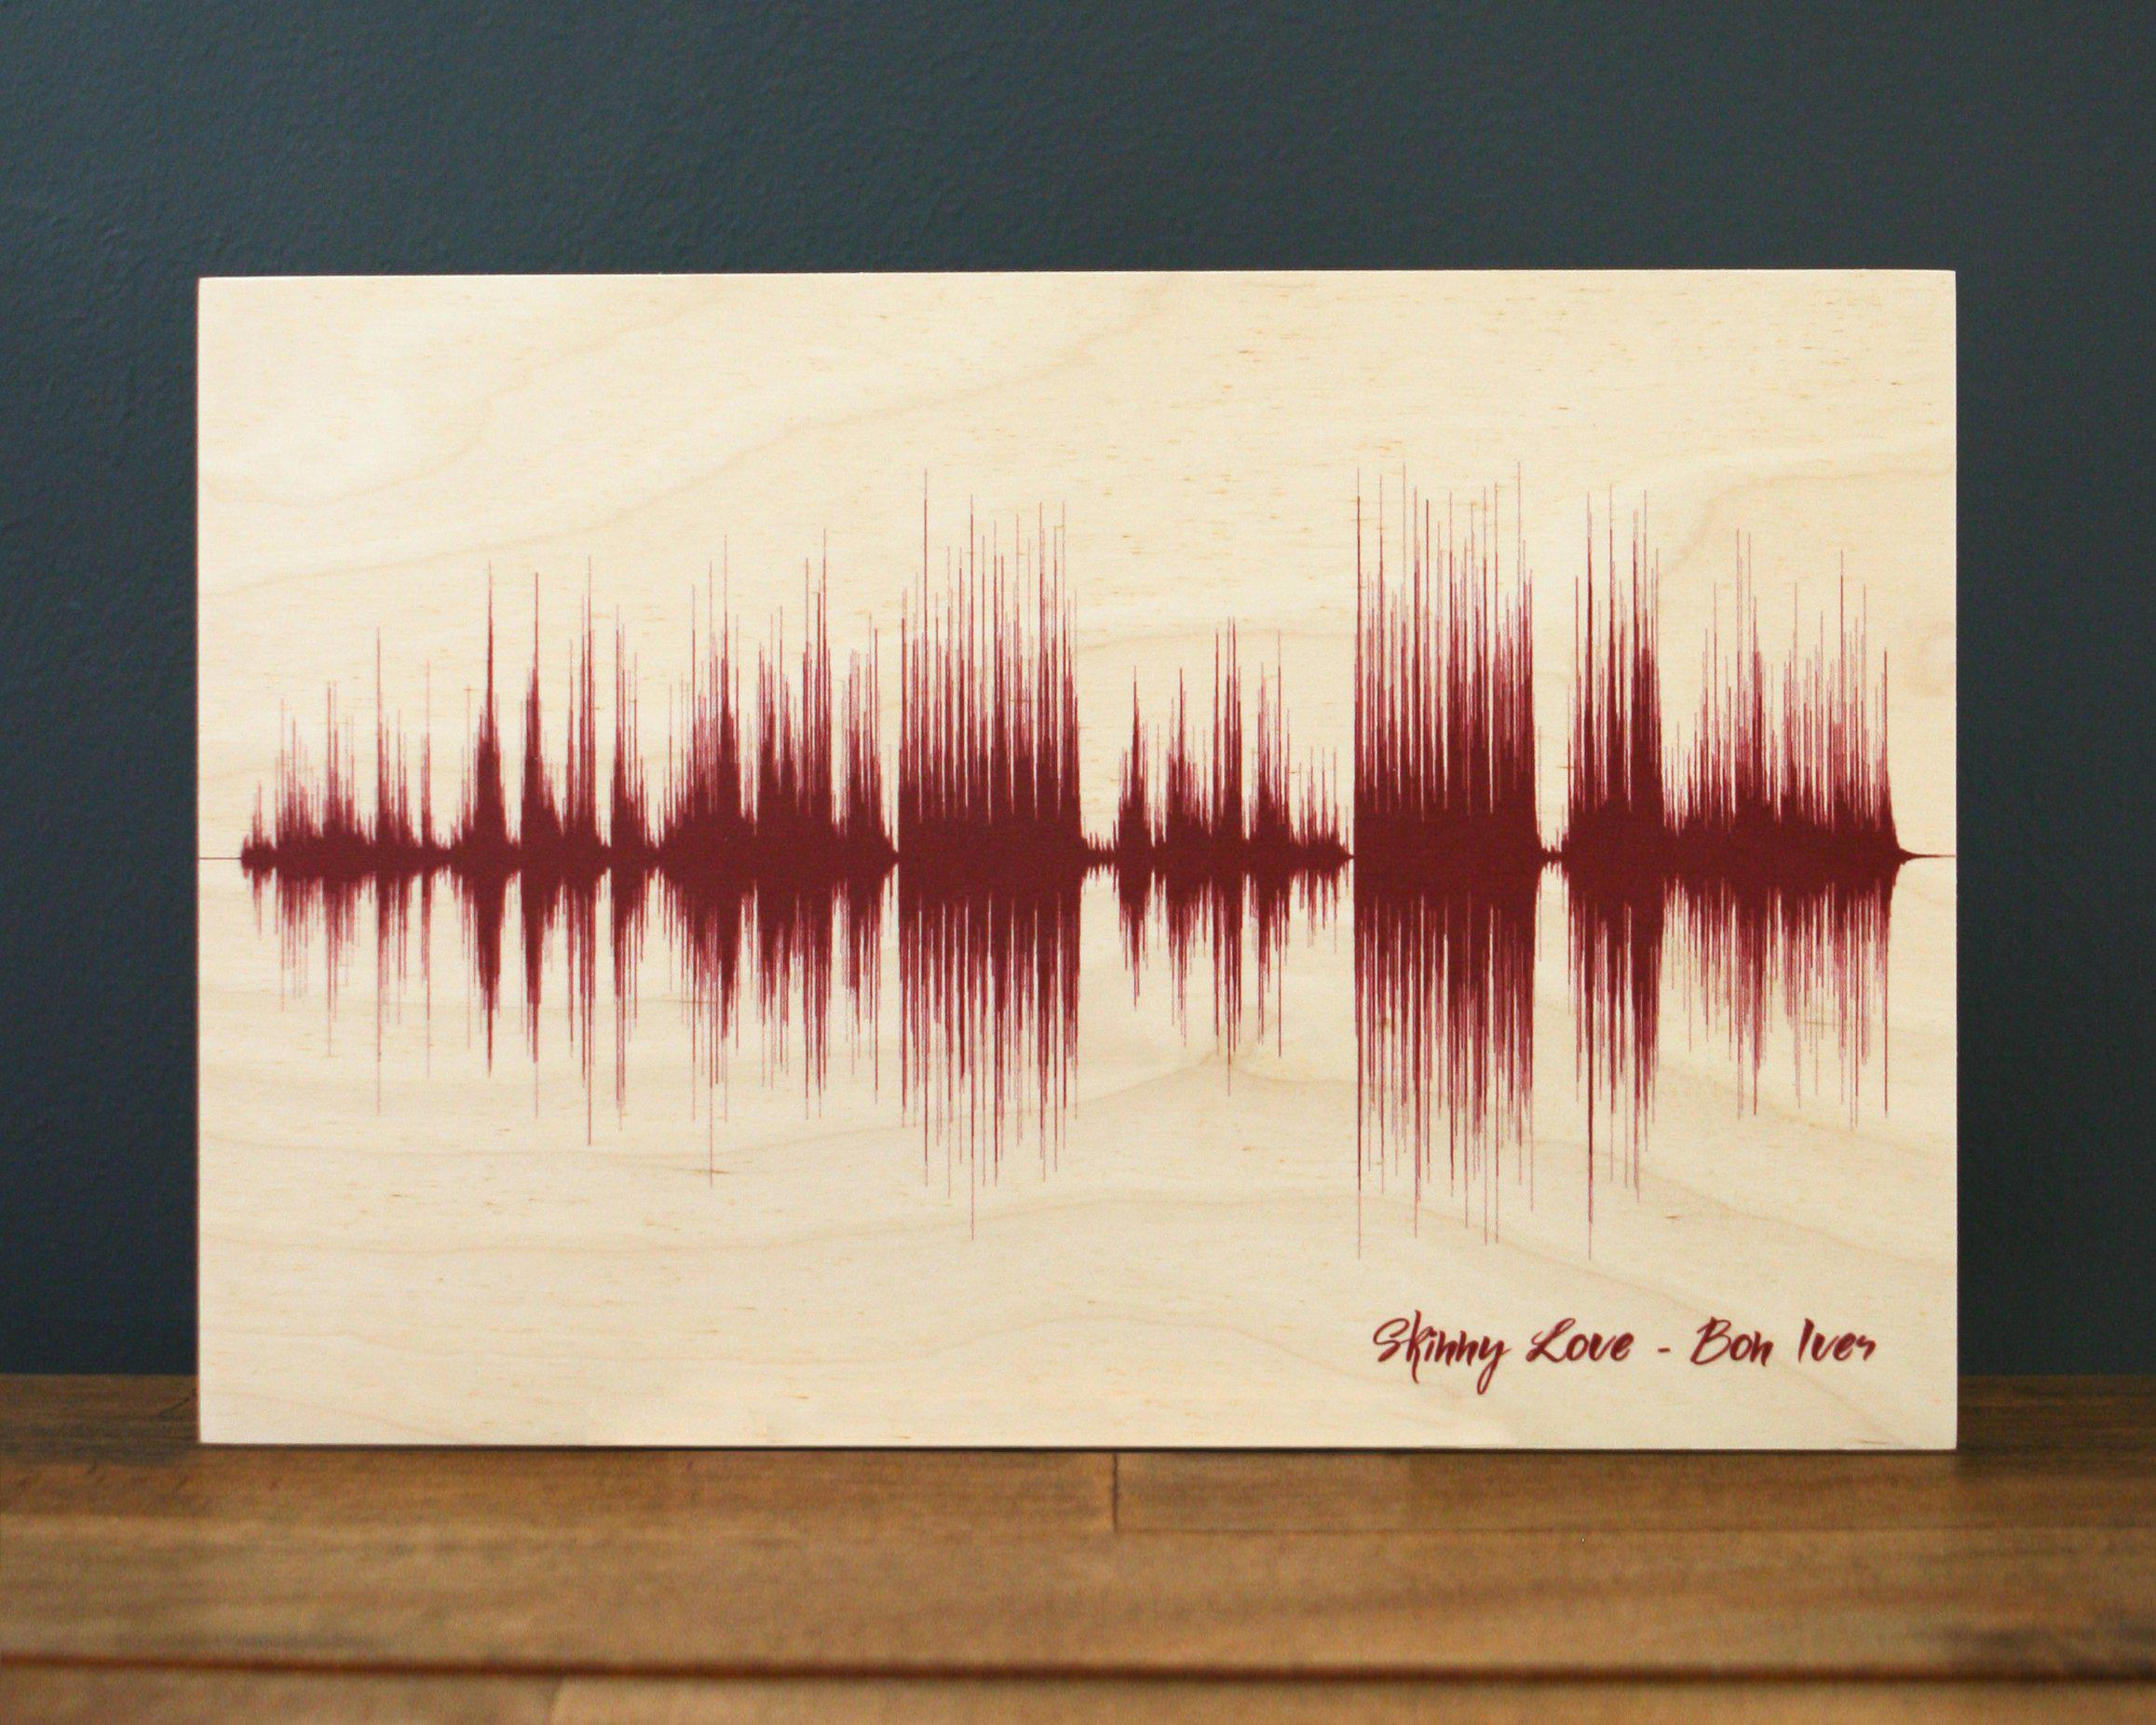 Wood Anniversary Gift, Song Sound Wave, 5th Anniversary Gifts